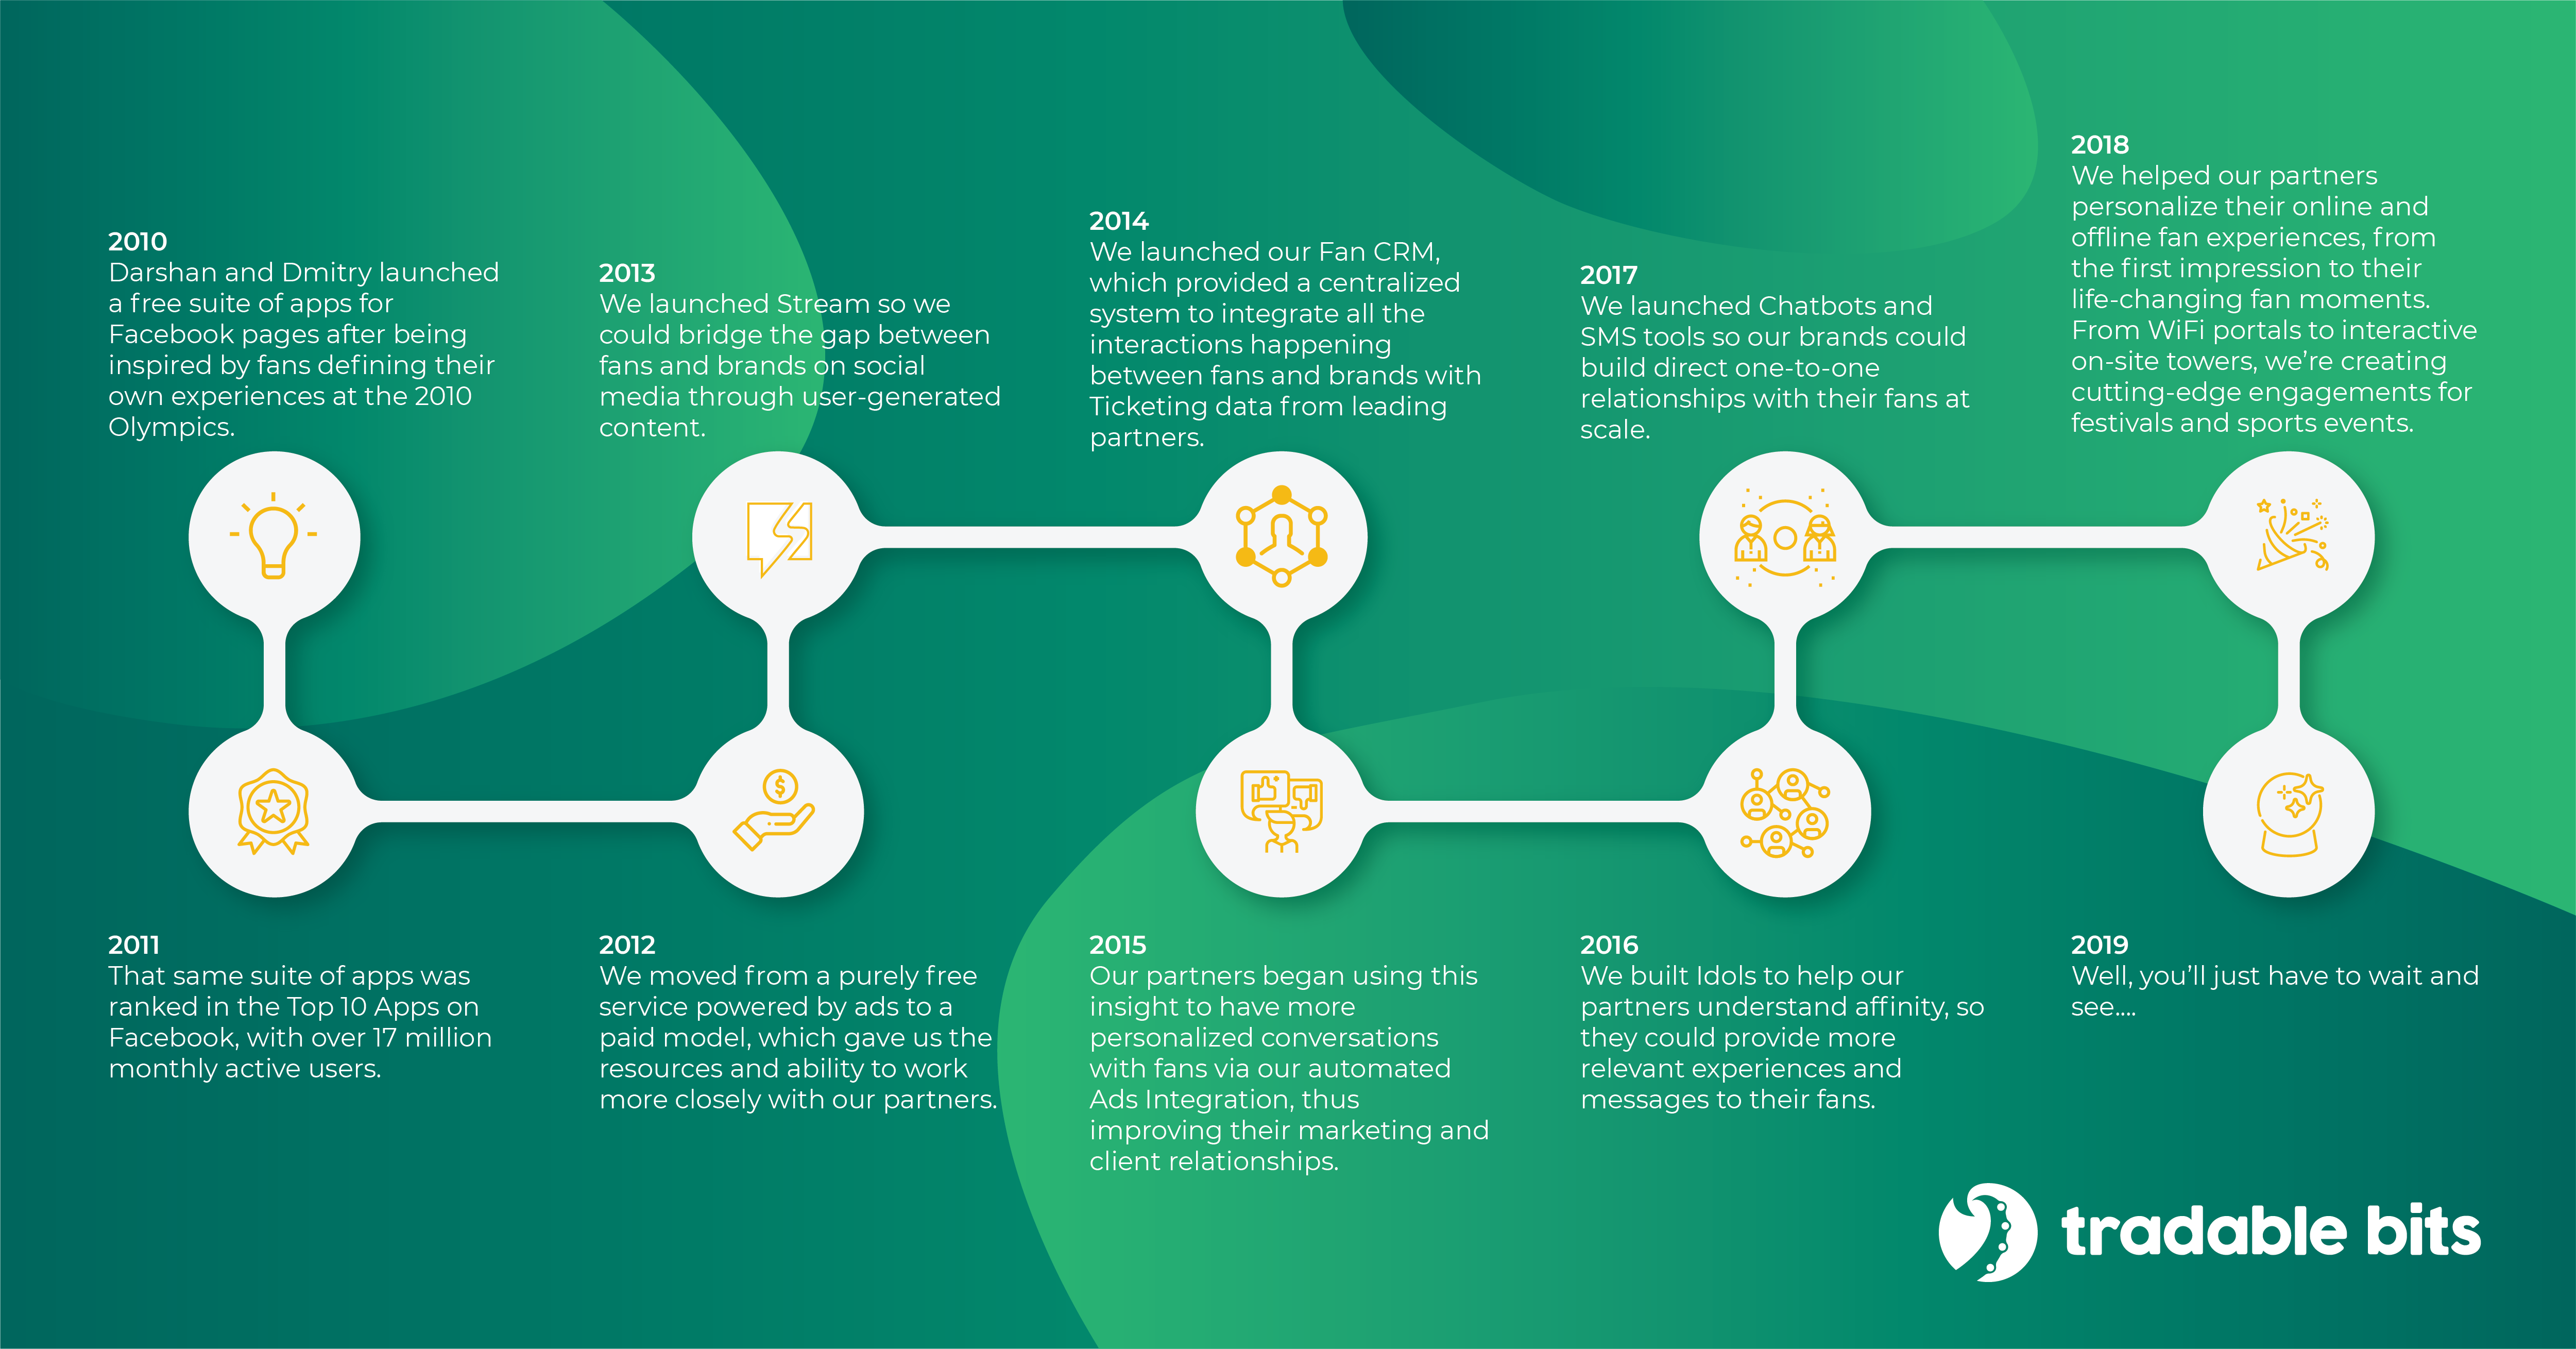 Tradable Bits Company History Timeline Infographic